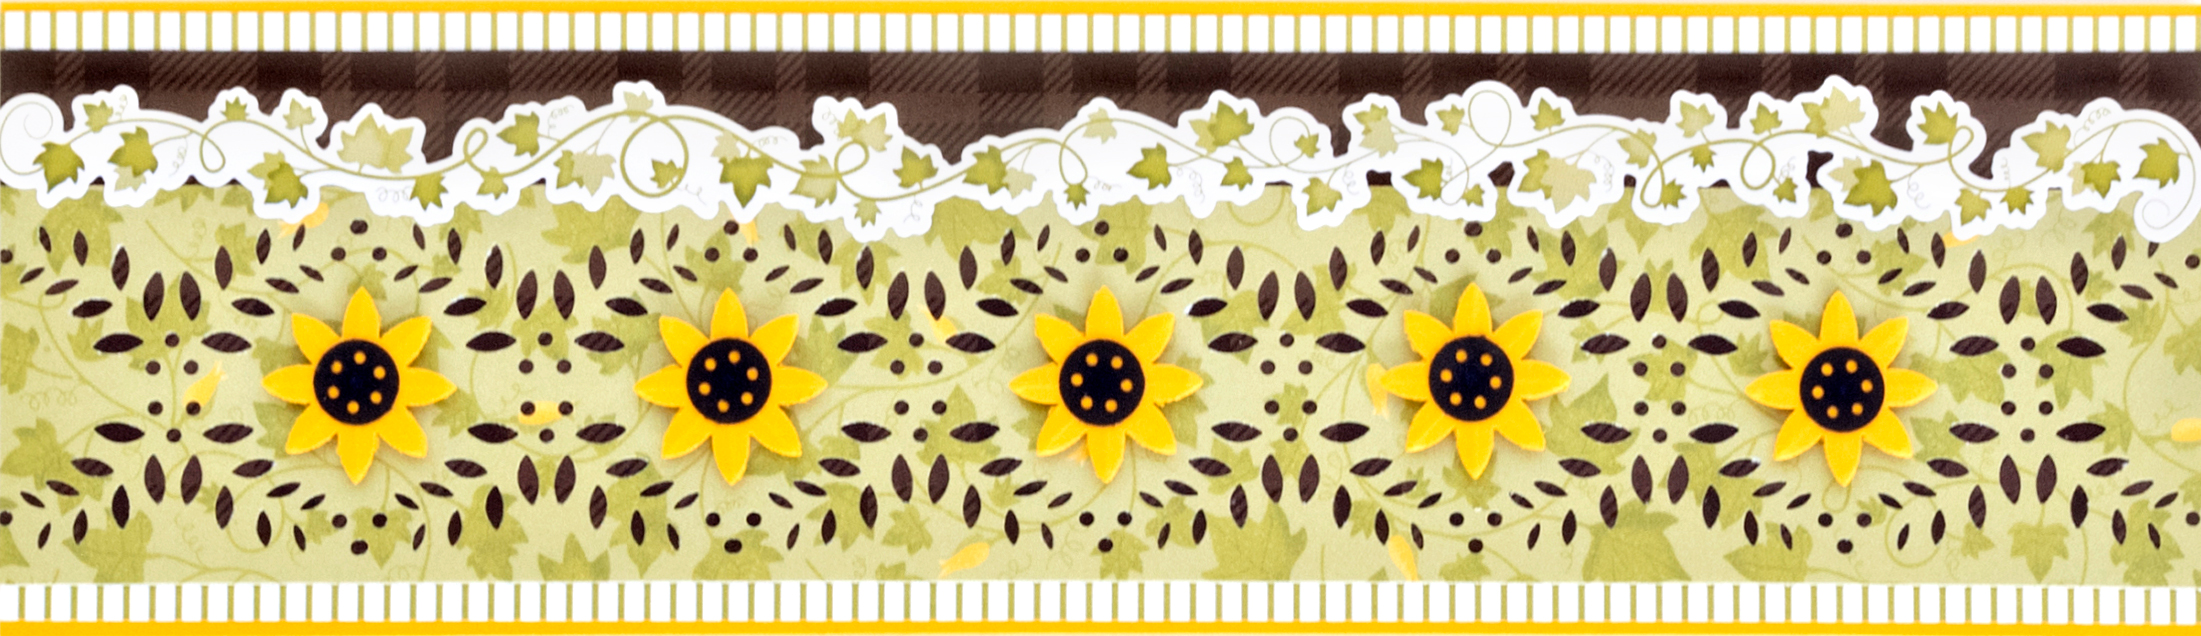 Fall-Garland-Scrapbook-Border3